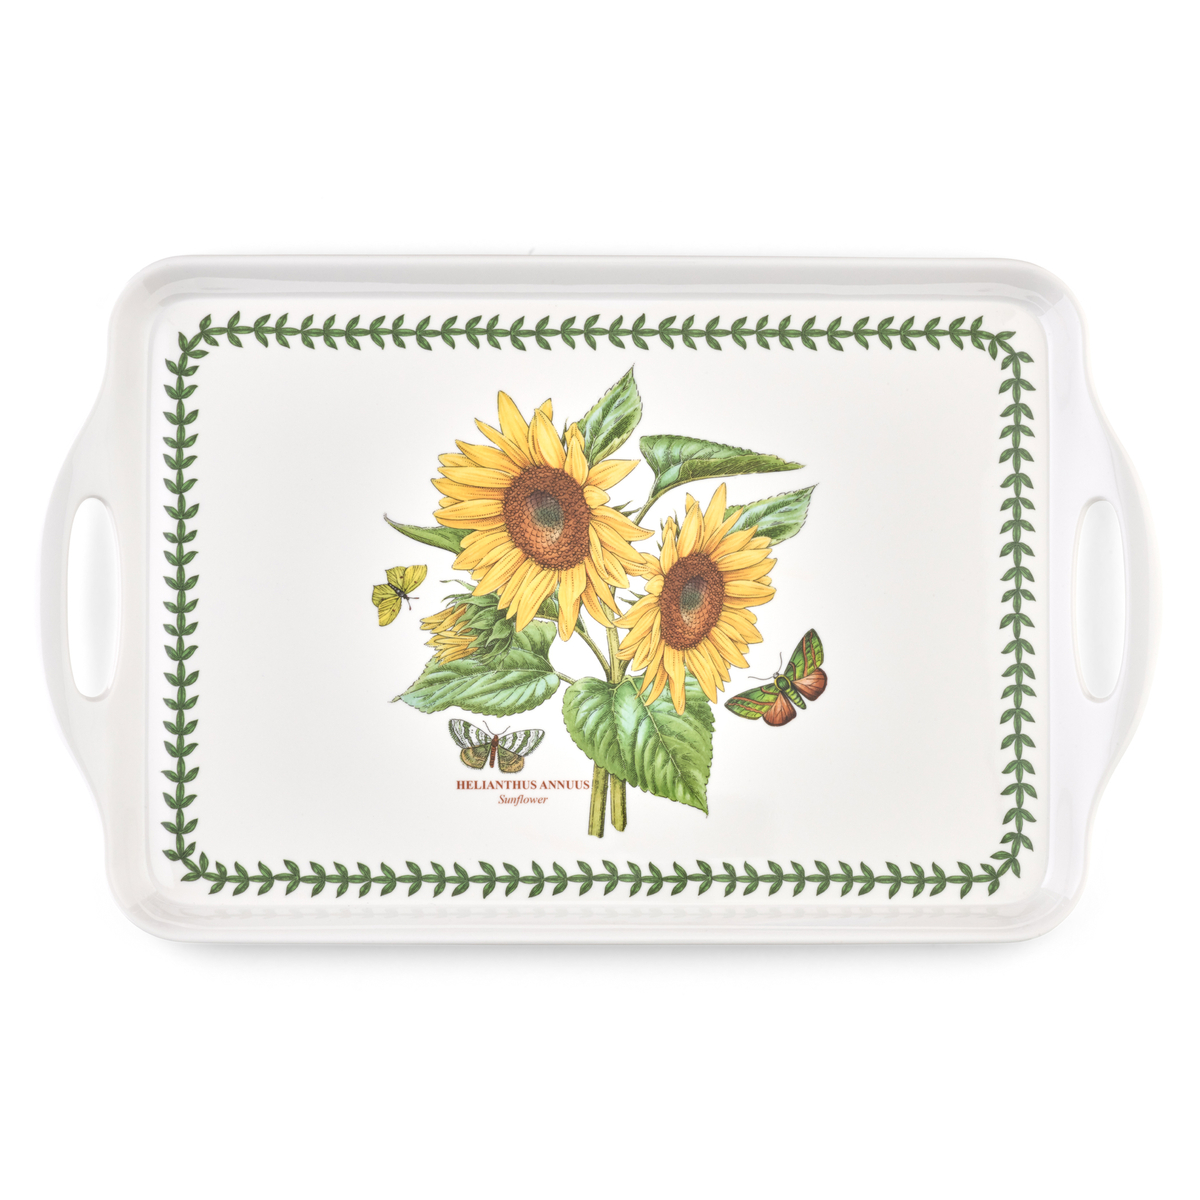 Pimpernel Botanic Garden Sunflower Large Melamine Handled Tray image number 0